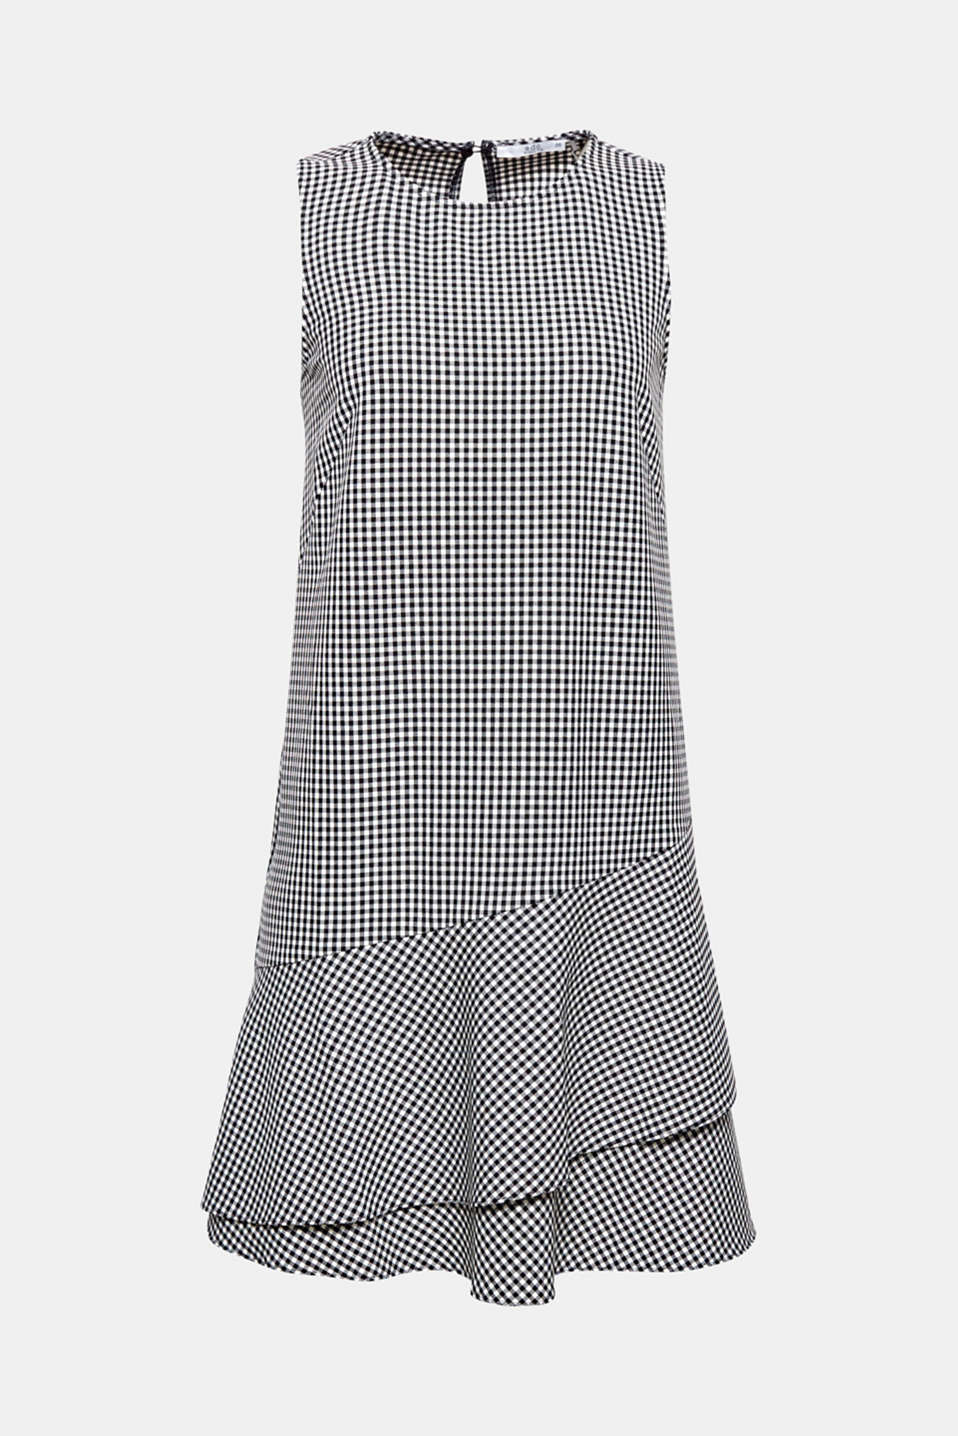 Classic gingham checks meet pretty flounce detail: this dress completes any outfit with its charming style.